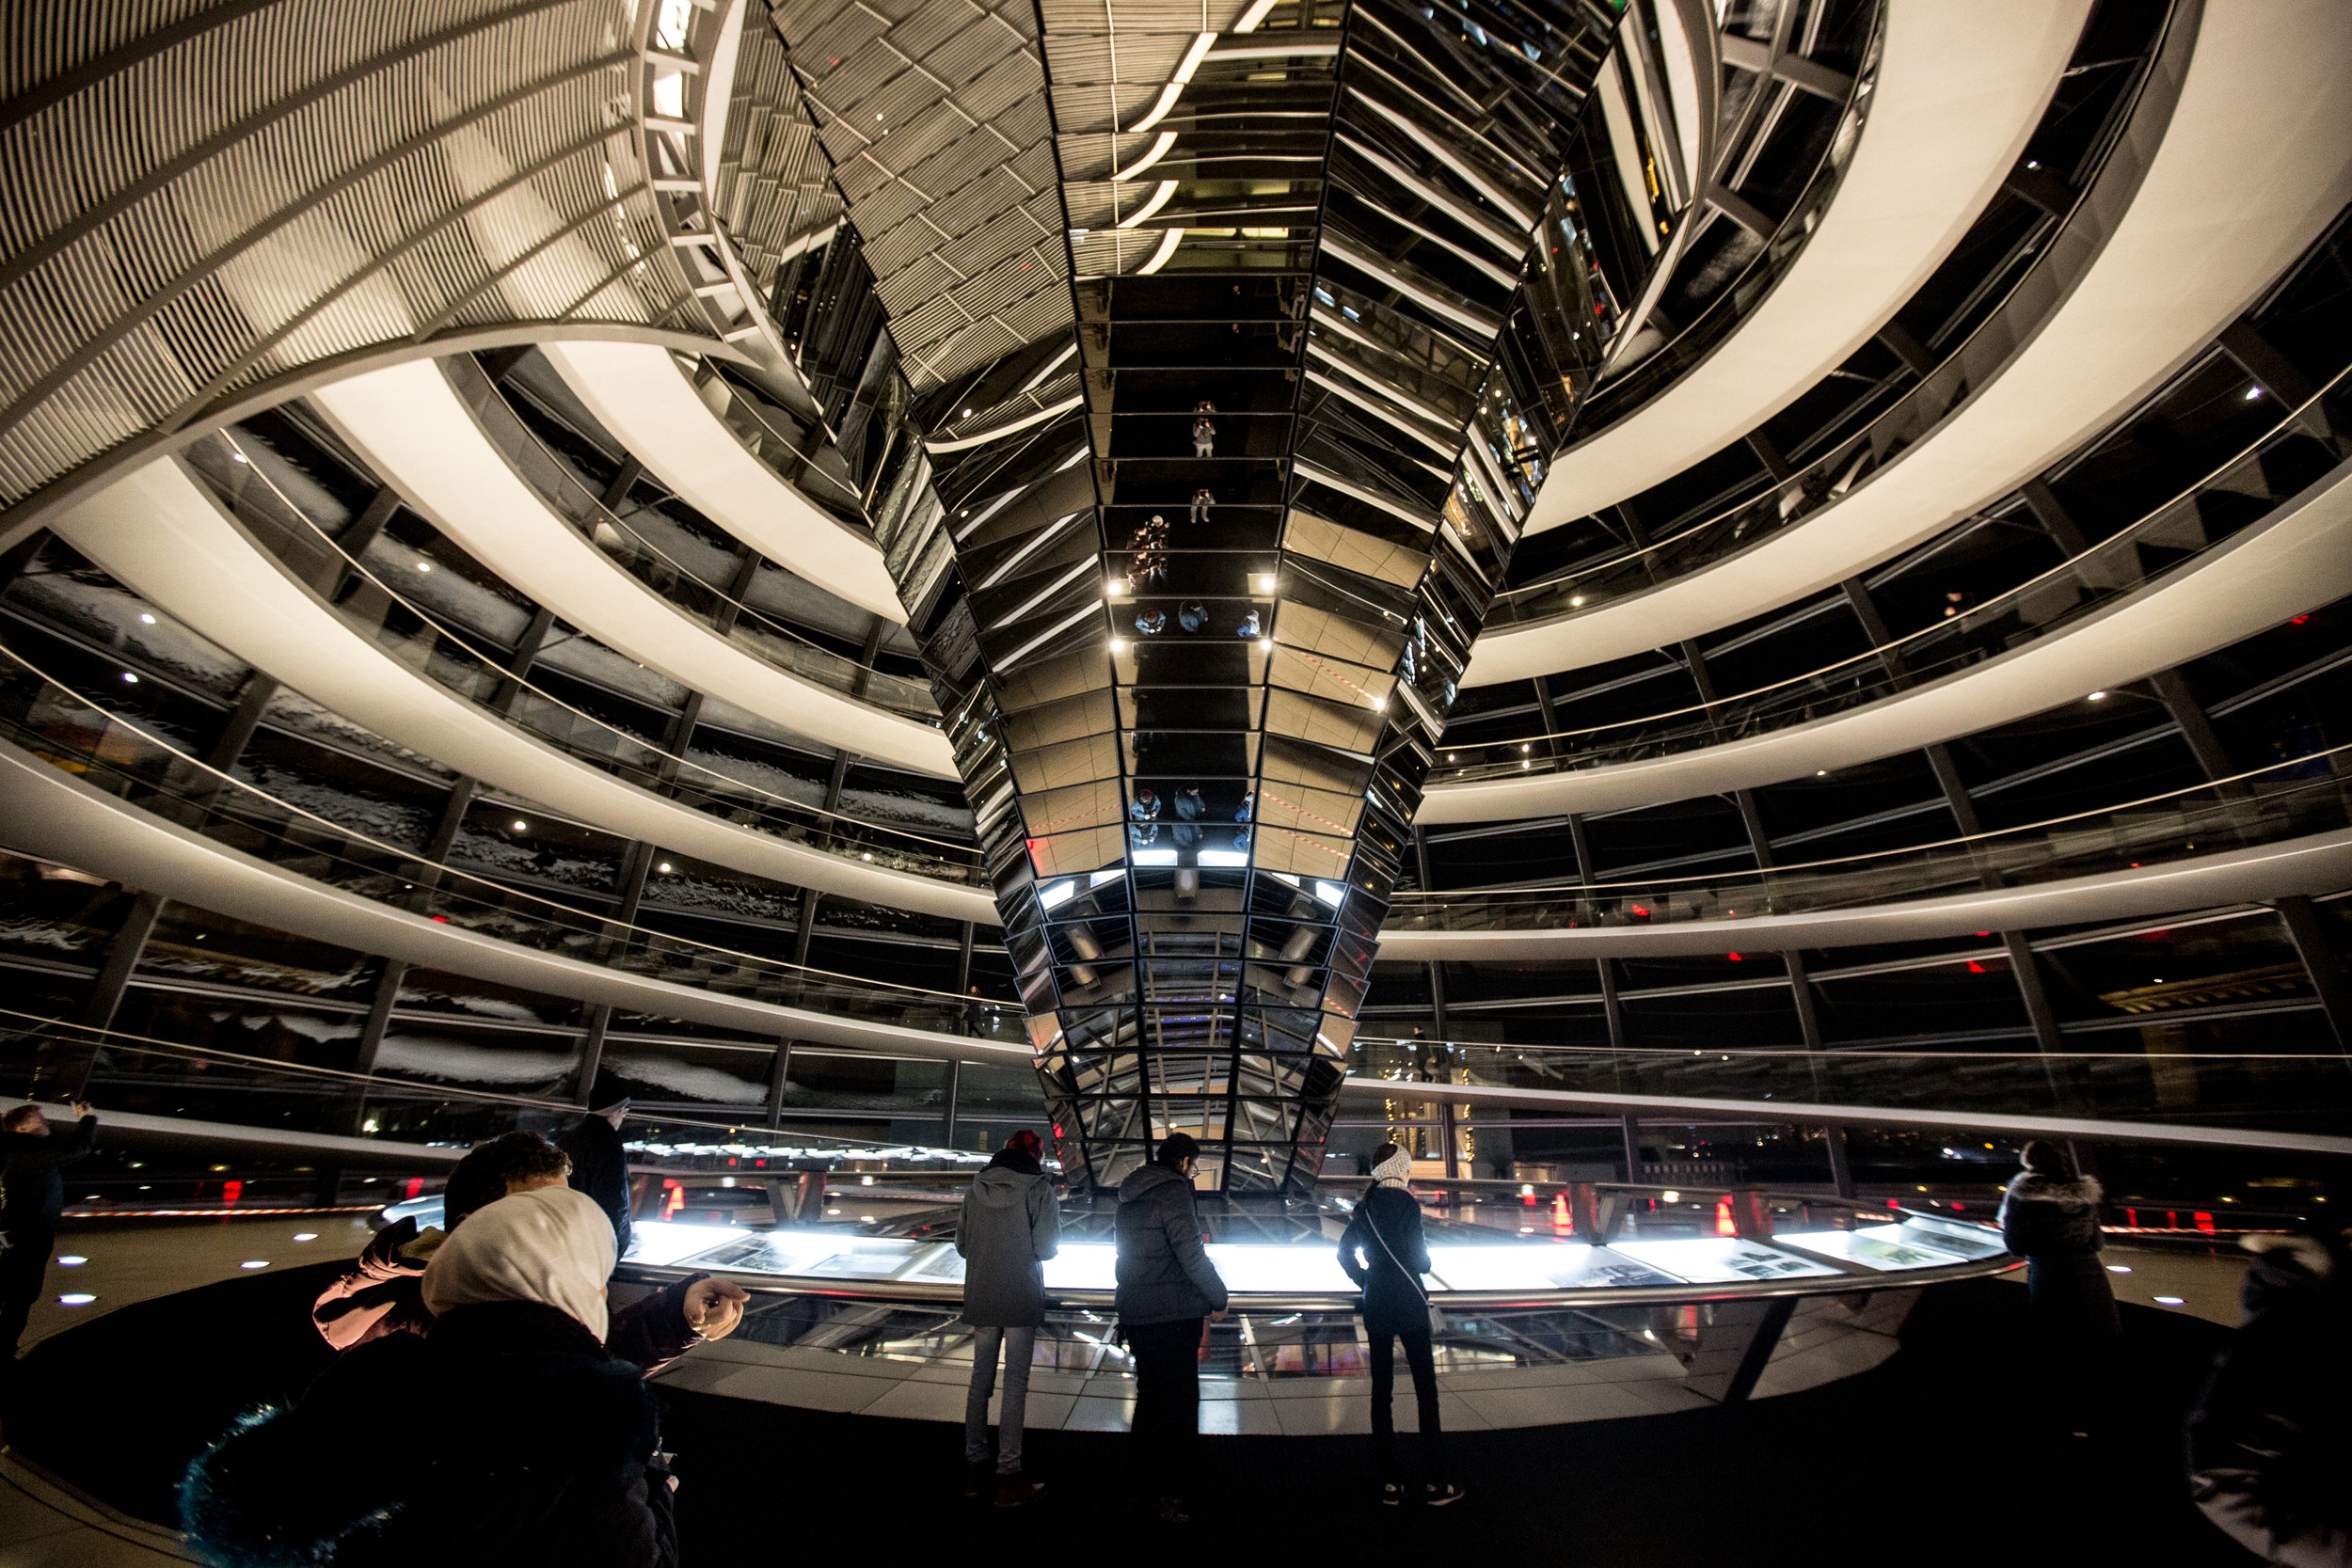 The interior of the glass dome which sits atop the Reichstag